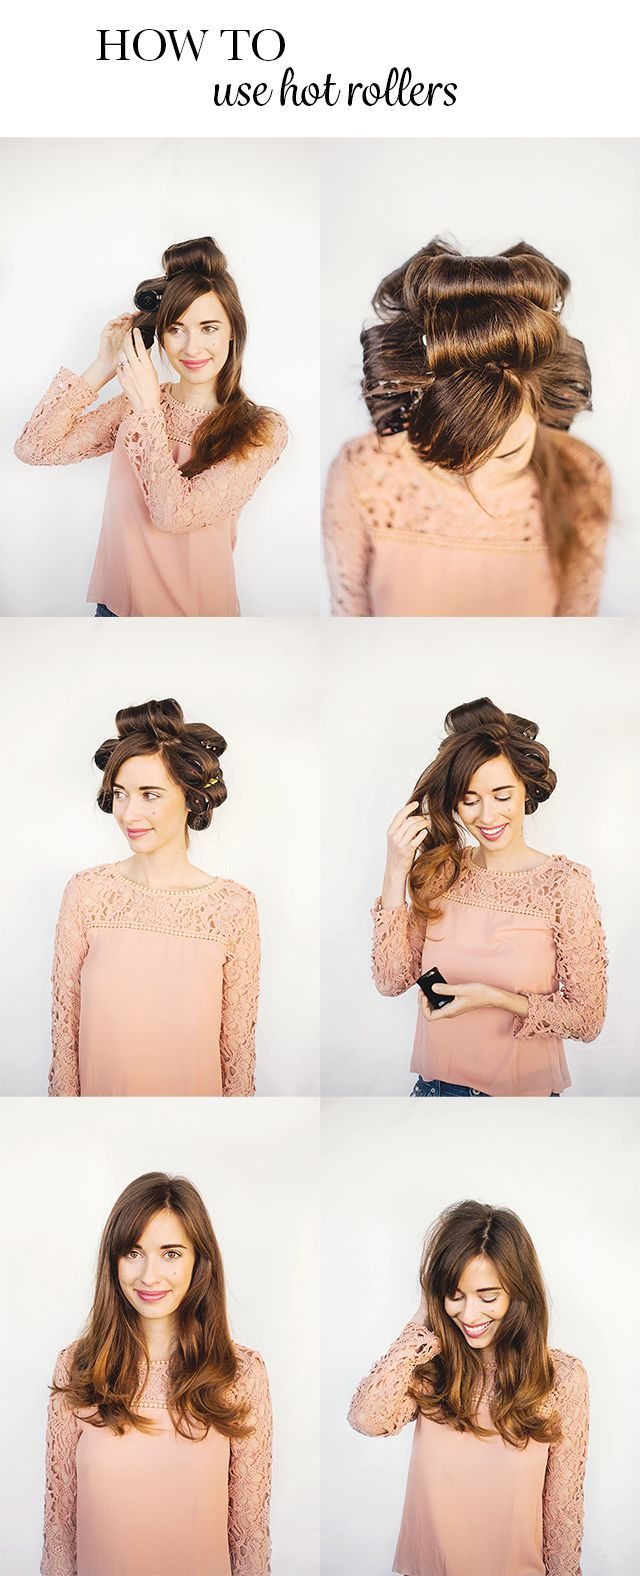 How to Use Hot Rollers For Long Hair | M Loves M | Bloglovin'